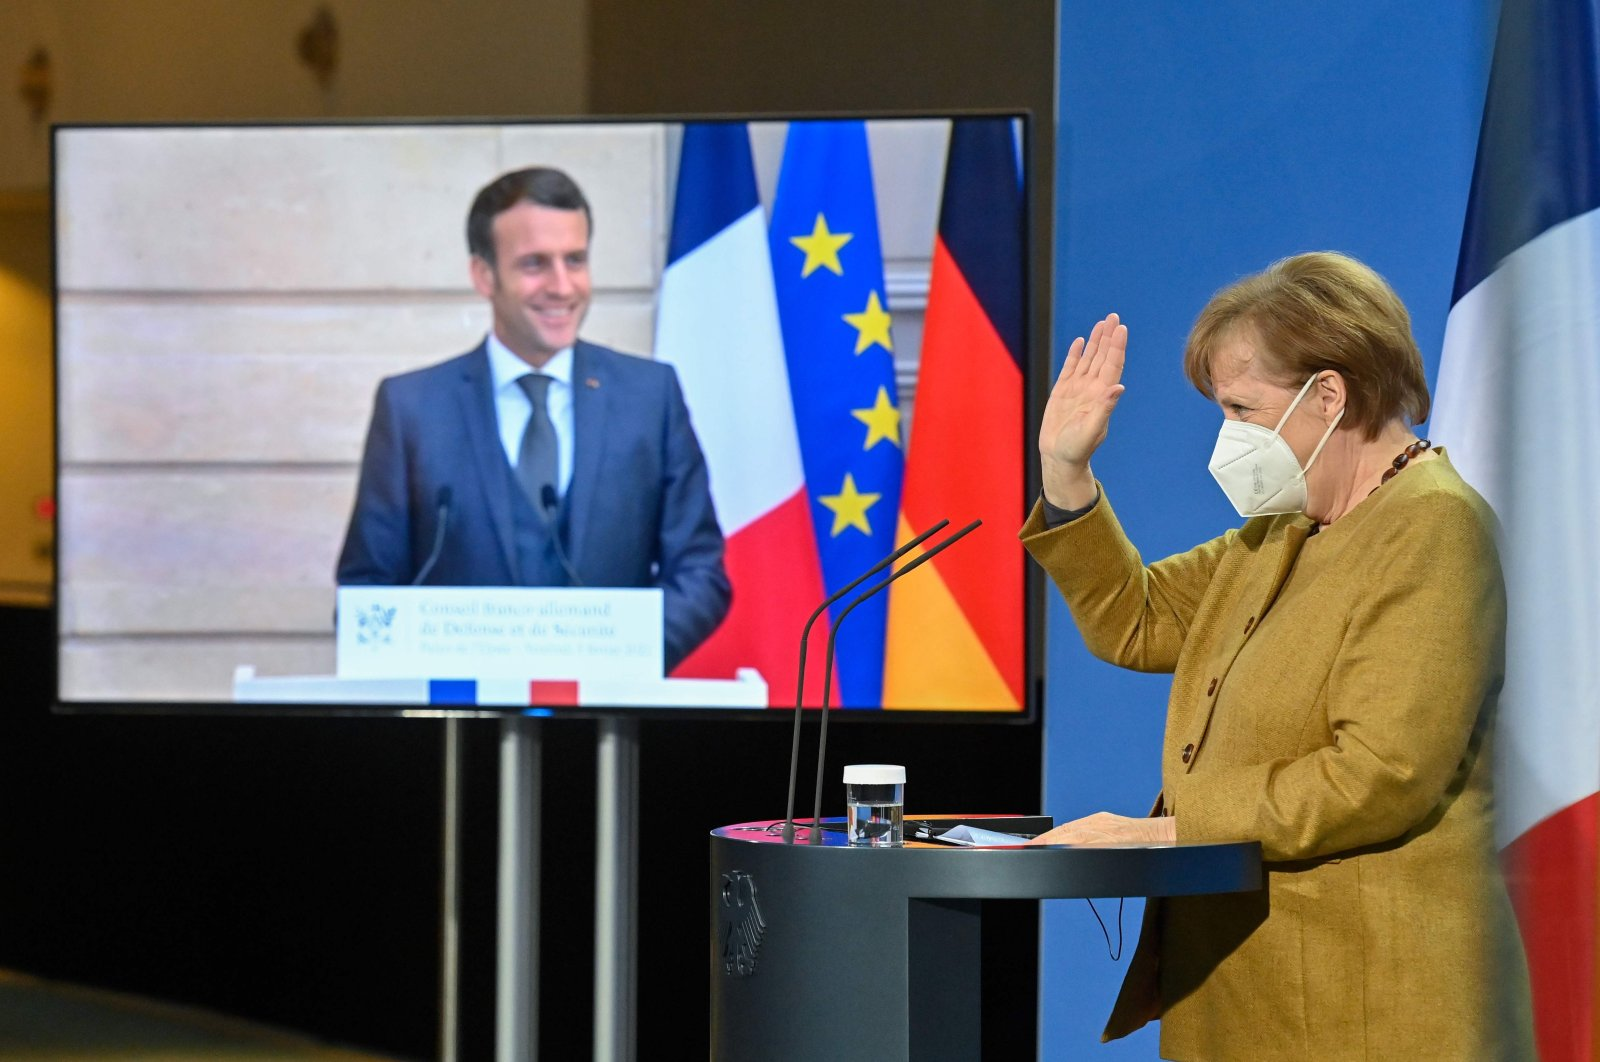 French President Emmanuel Macron (L) seemingly watches German Chancellor Angela Merkel wave at the end of a press conference after German-French Security Council video talks, Berlin, Germany, Feb. 5, 2021. (AFP Photo)